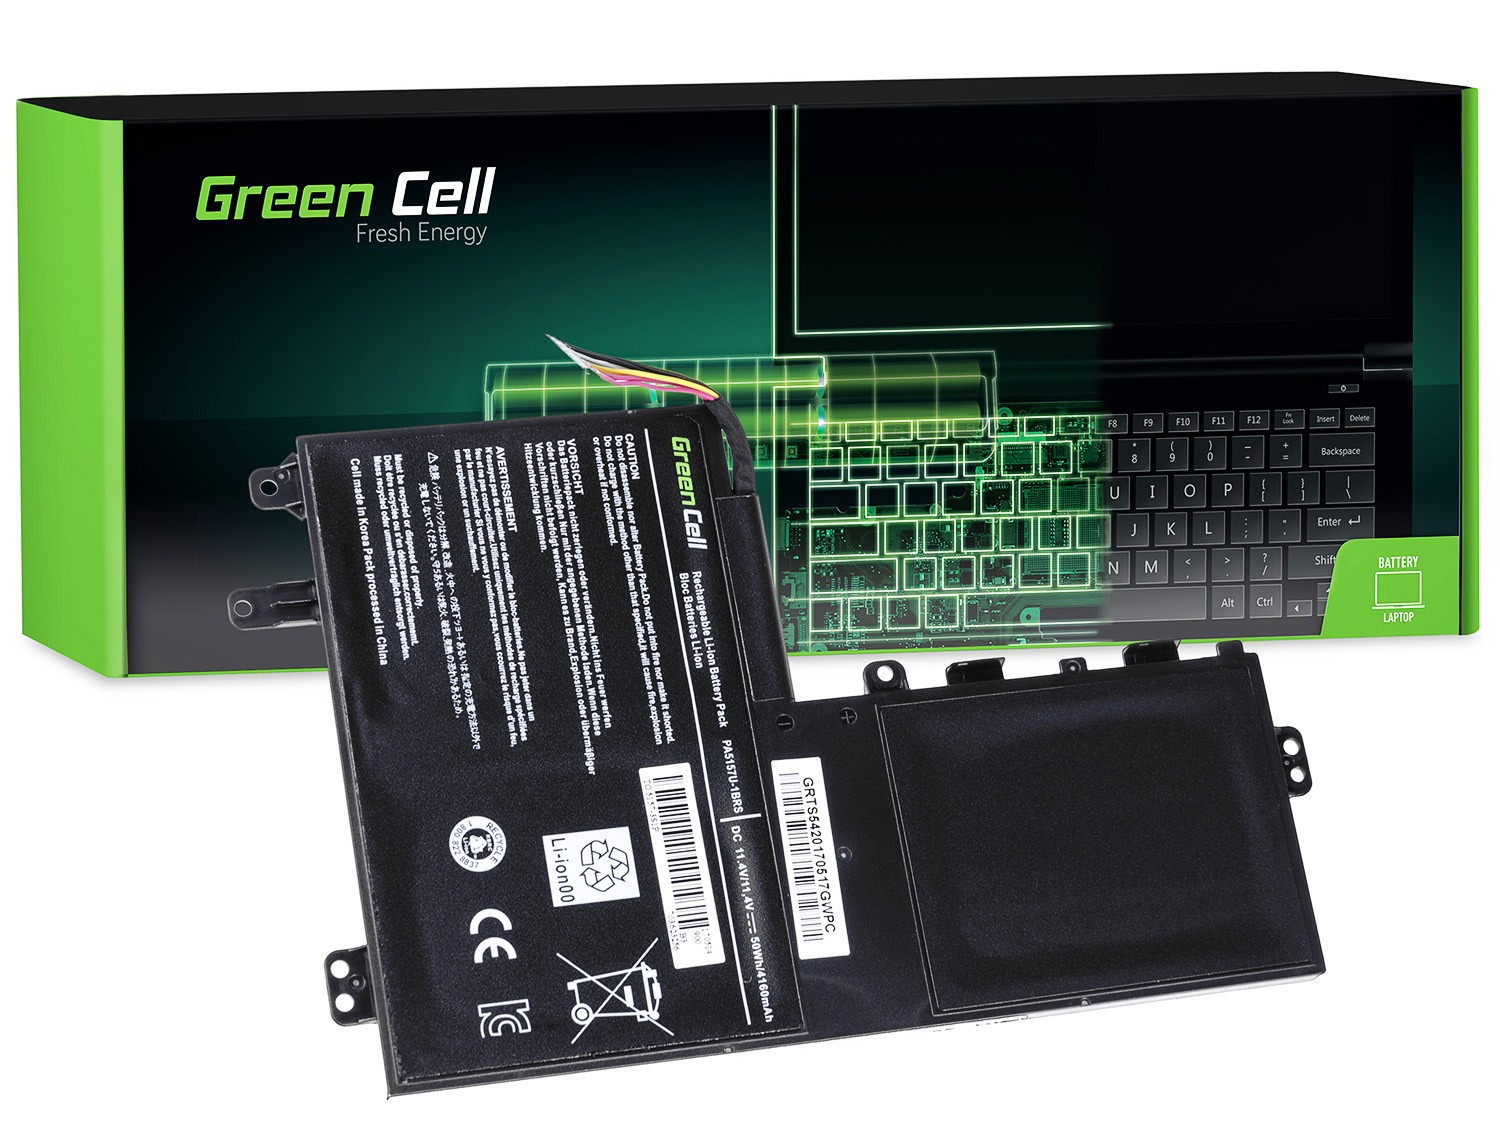 Green Cell Battery for Toshiba Satellite U940 U40t U50t M50-A M50D-A M50Dt M50t / 11,4V 4160mAh